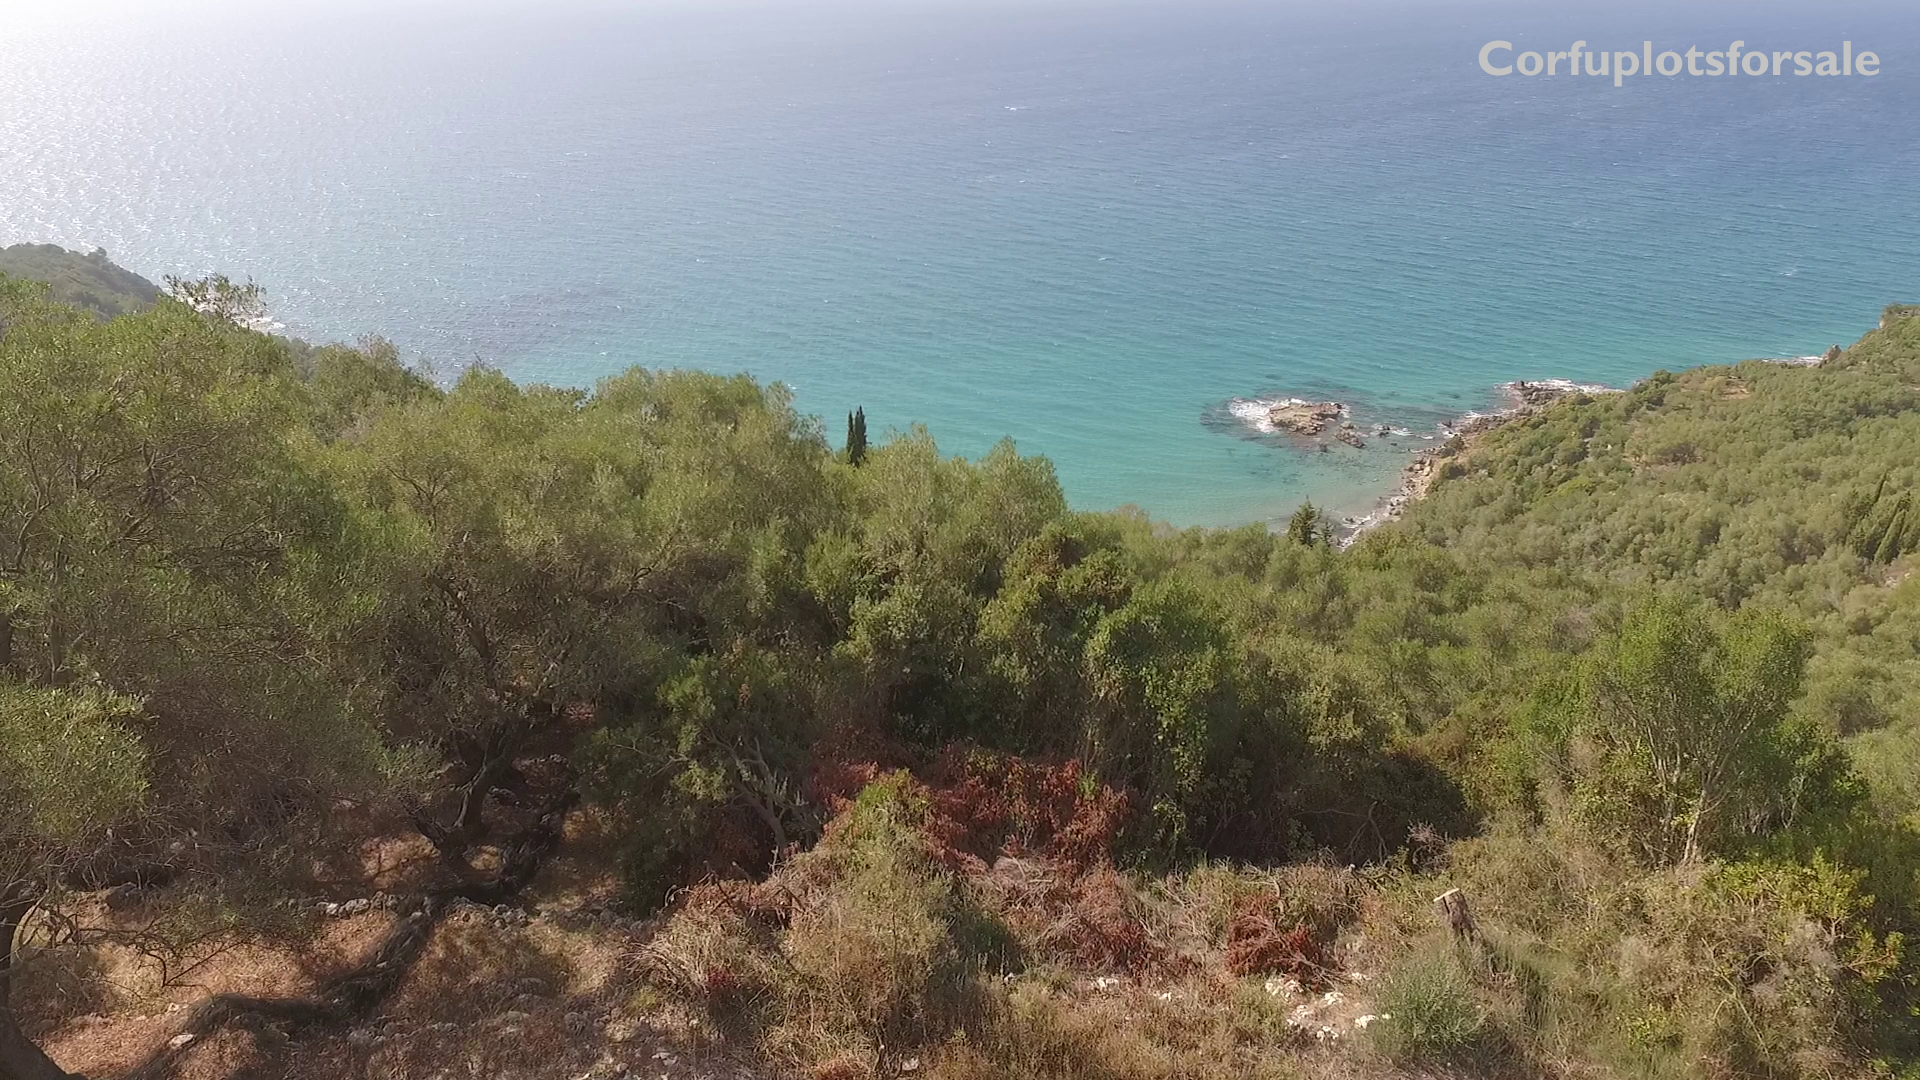 Superb view with absolute privacy in Pentati, Corfu